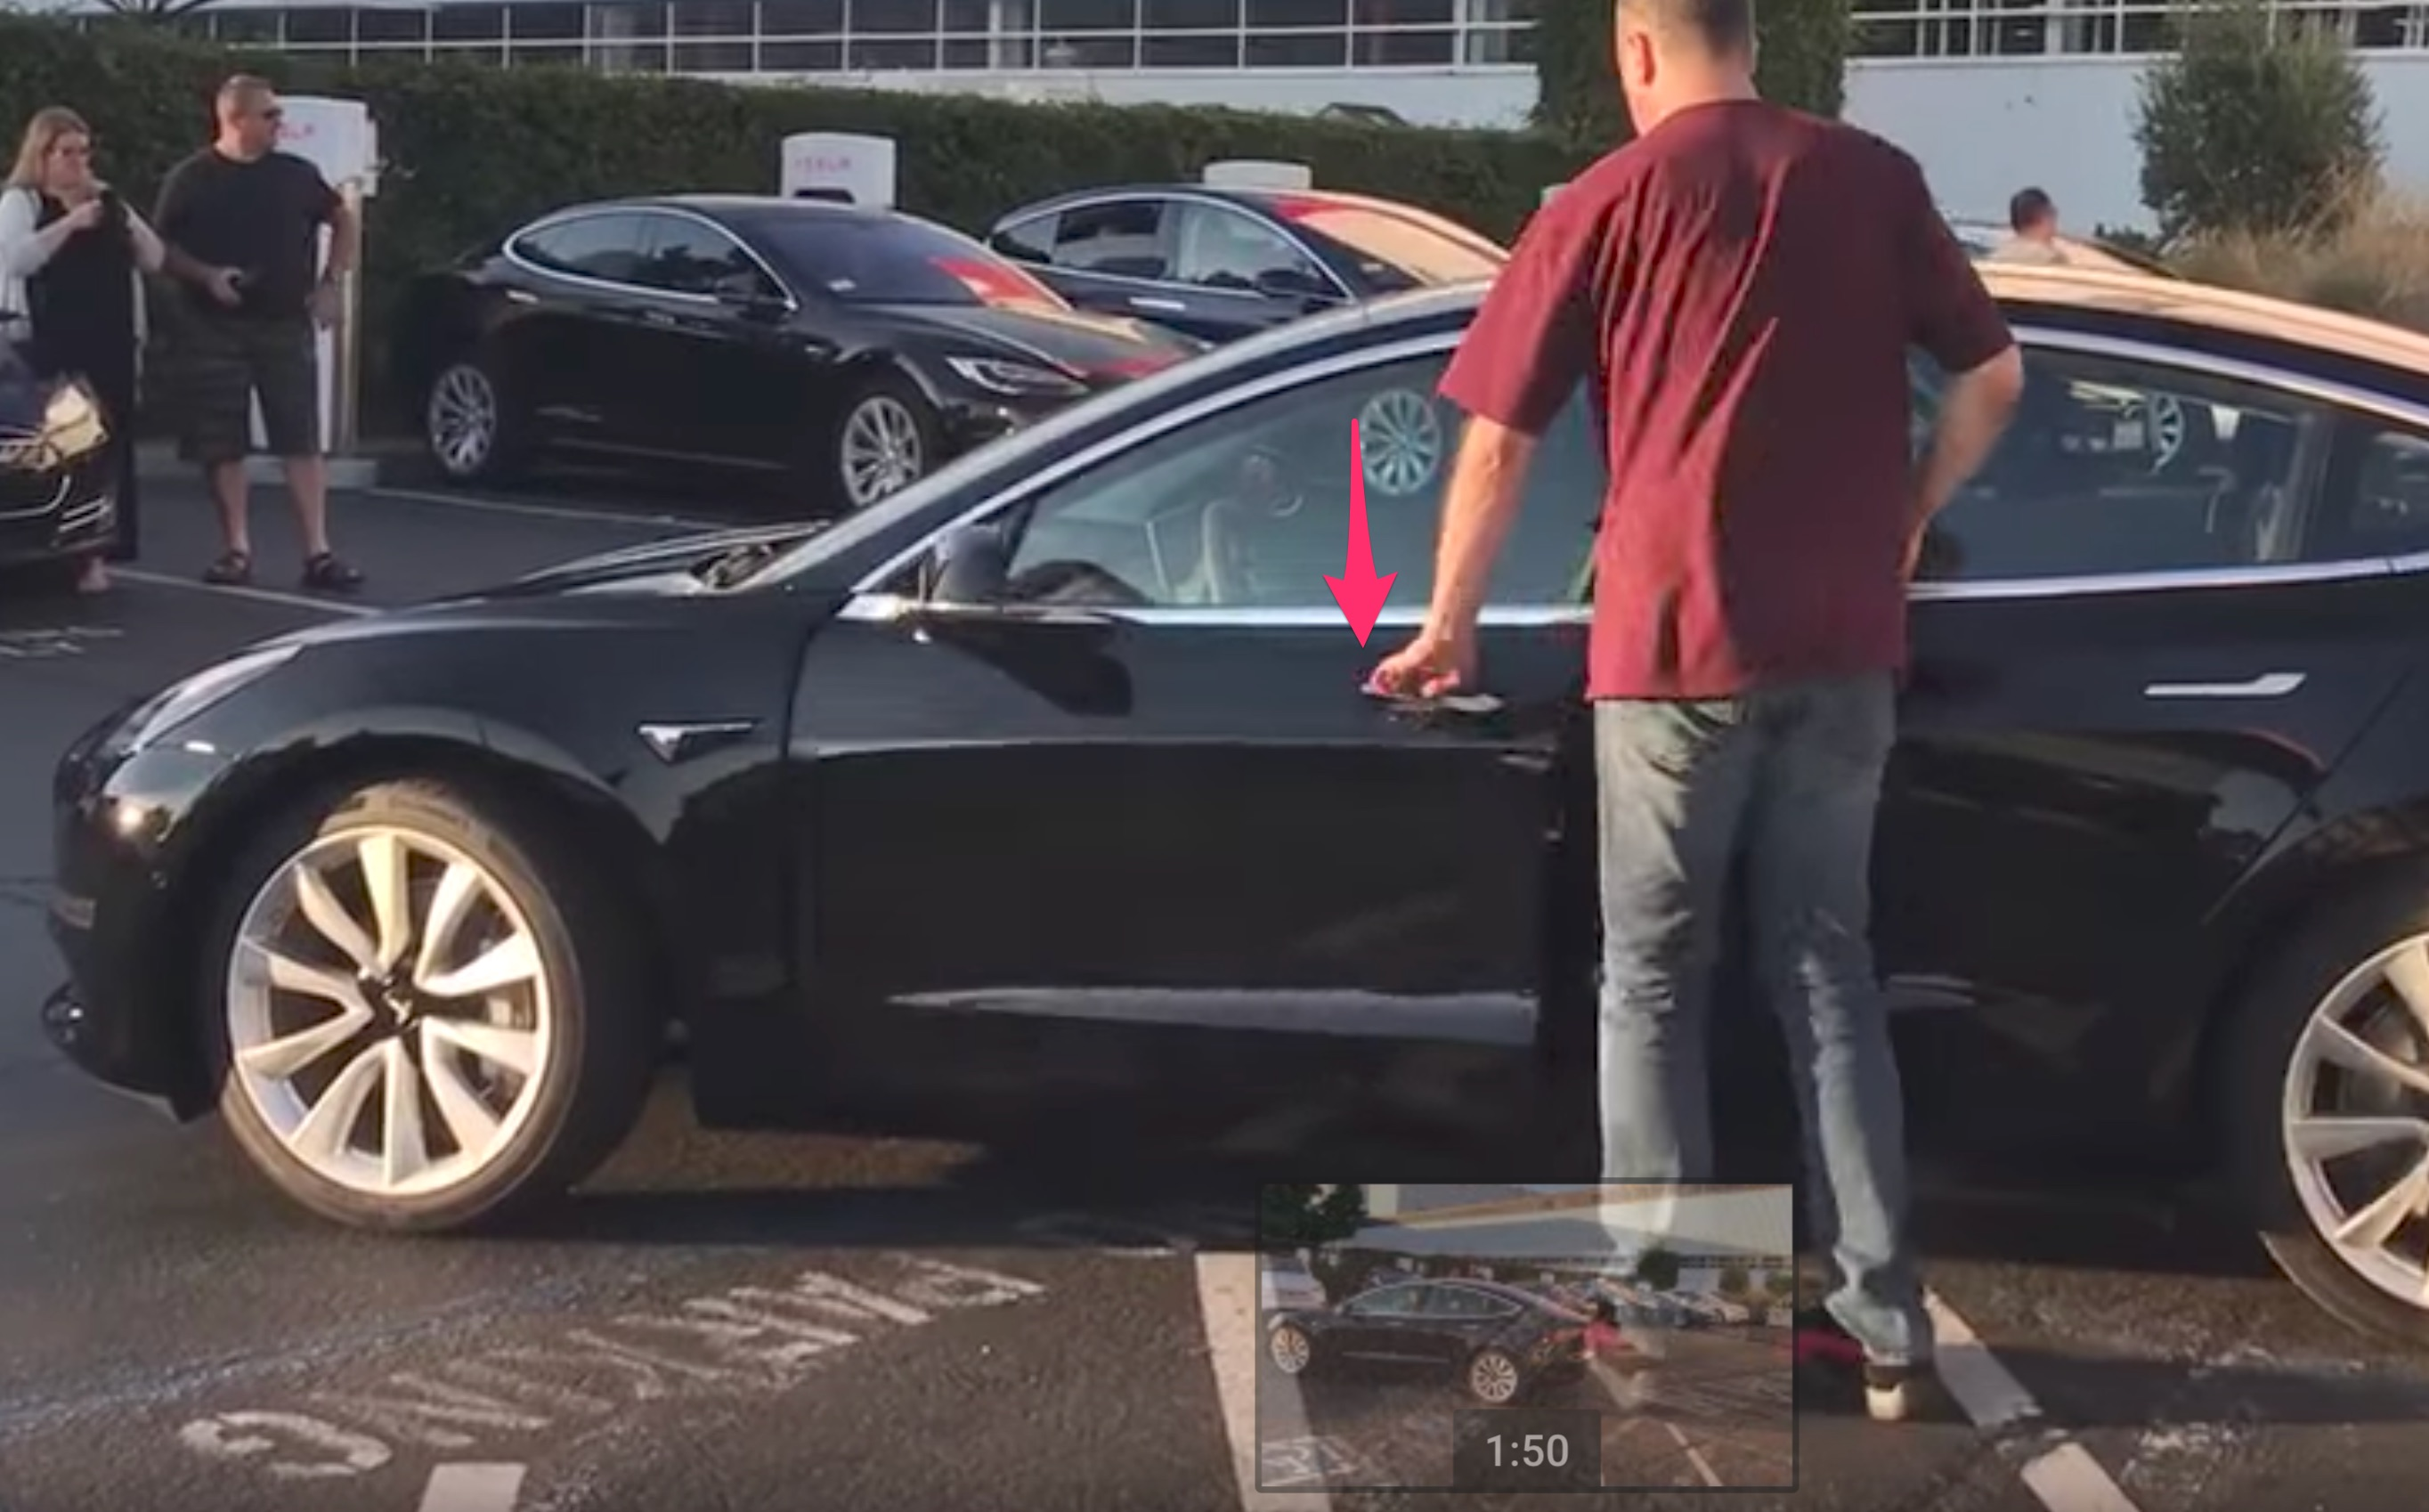 Video Of Tesla Model 3 Production Car Appears To Show Self